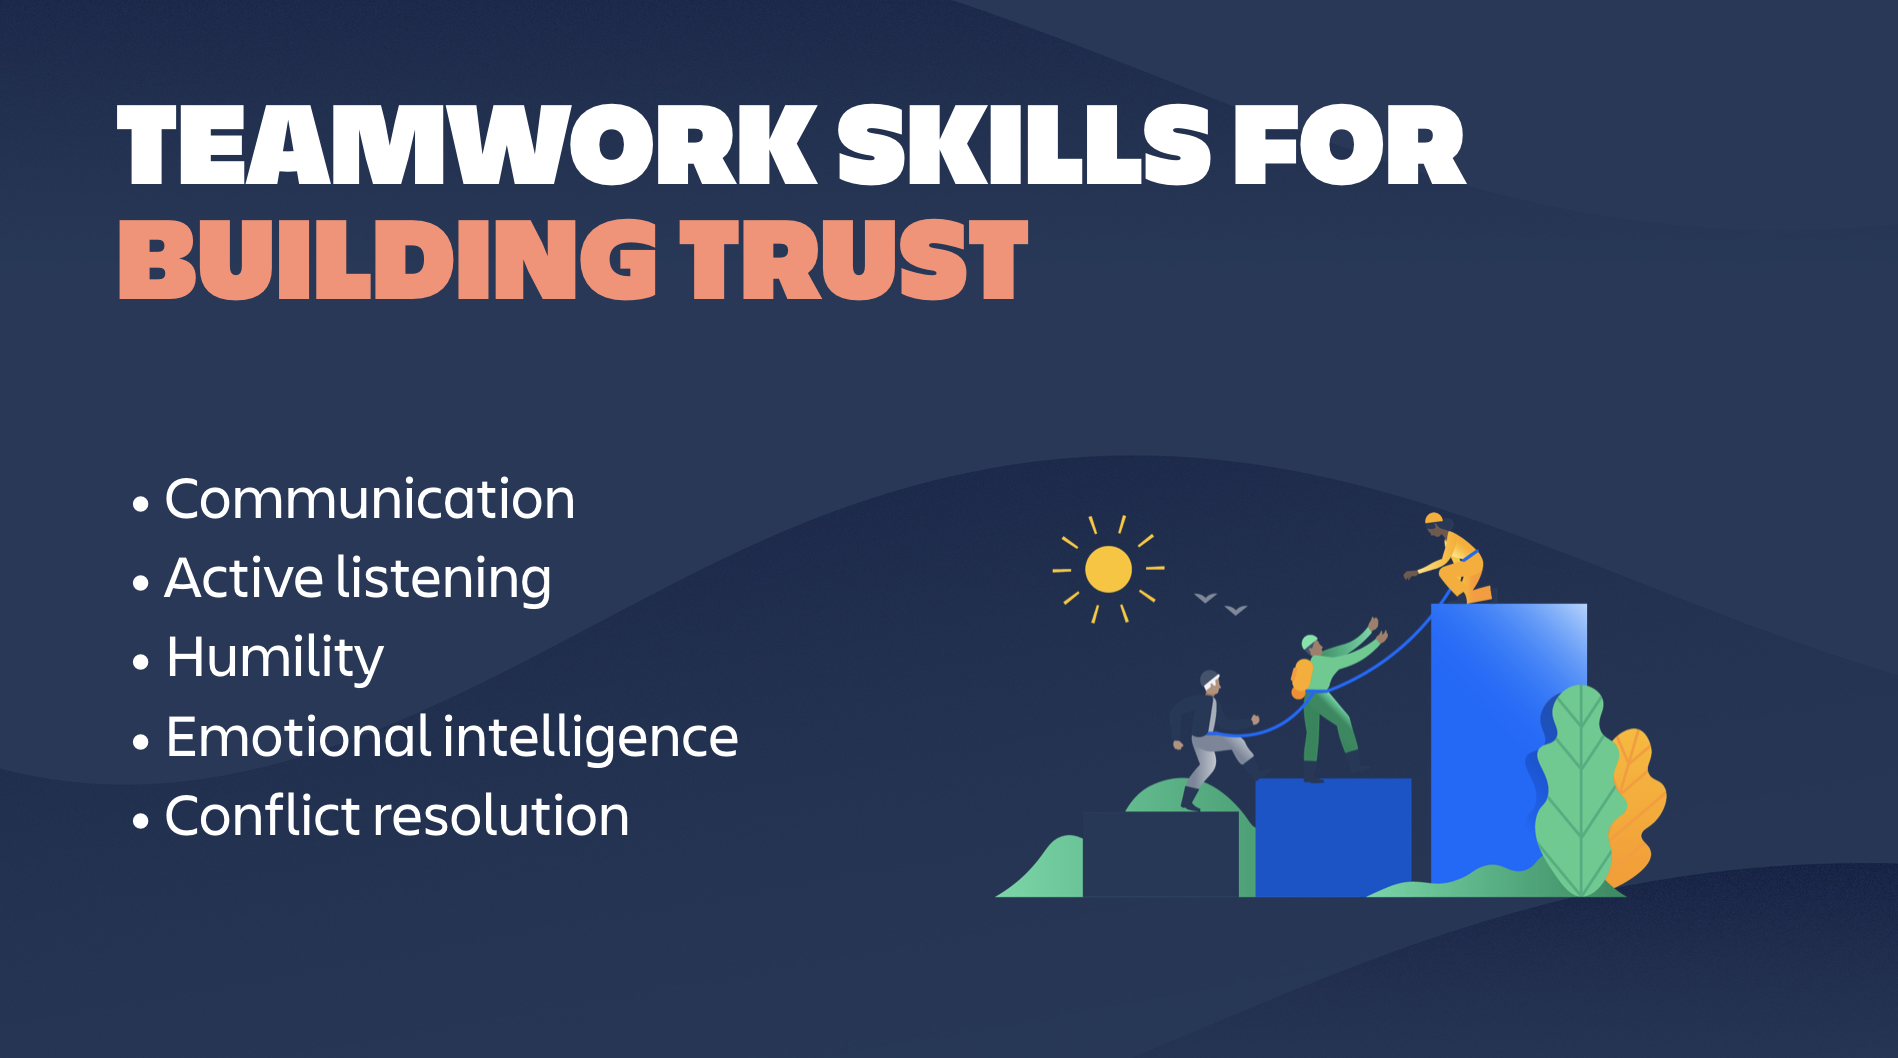 Teamwork skills that help you build trust